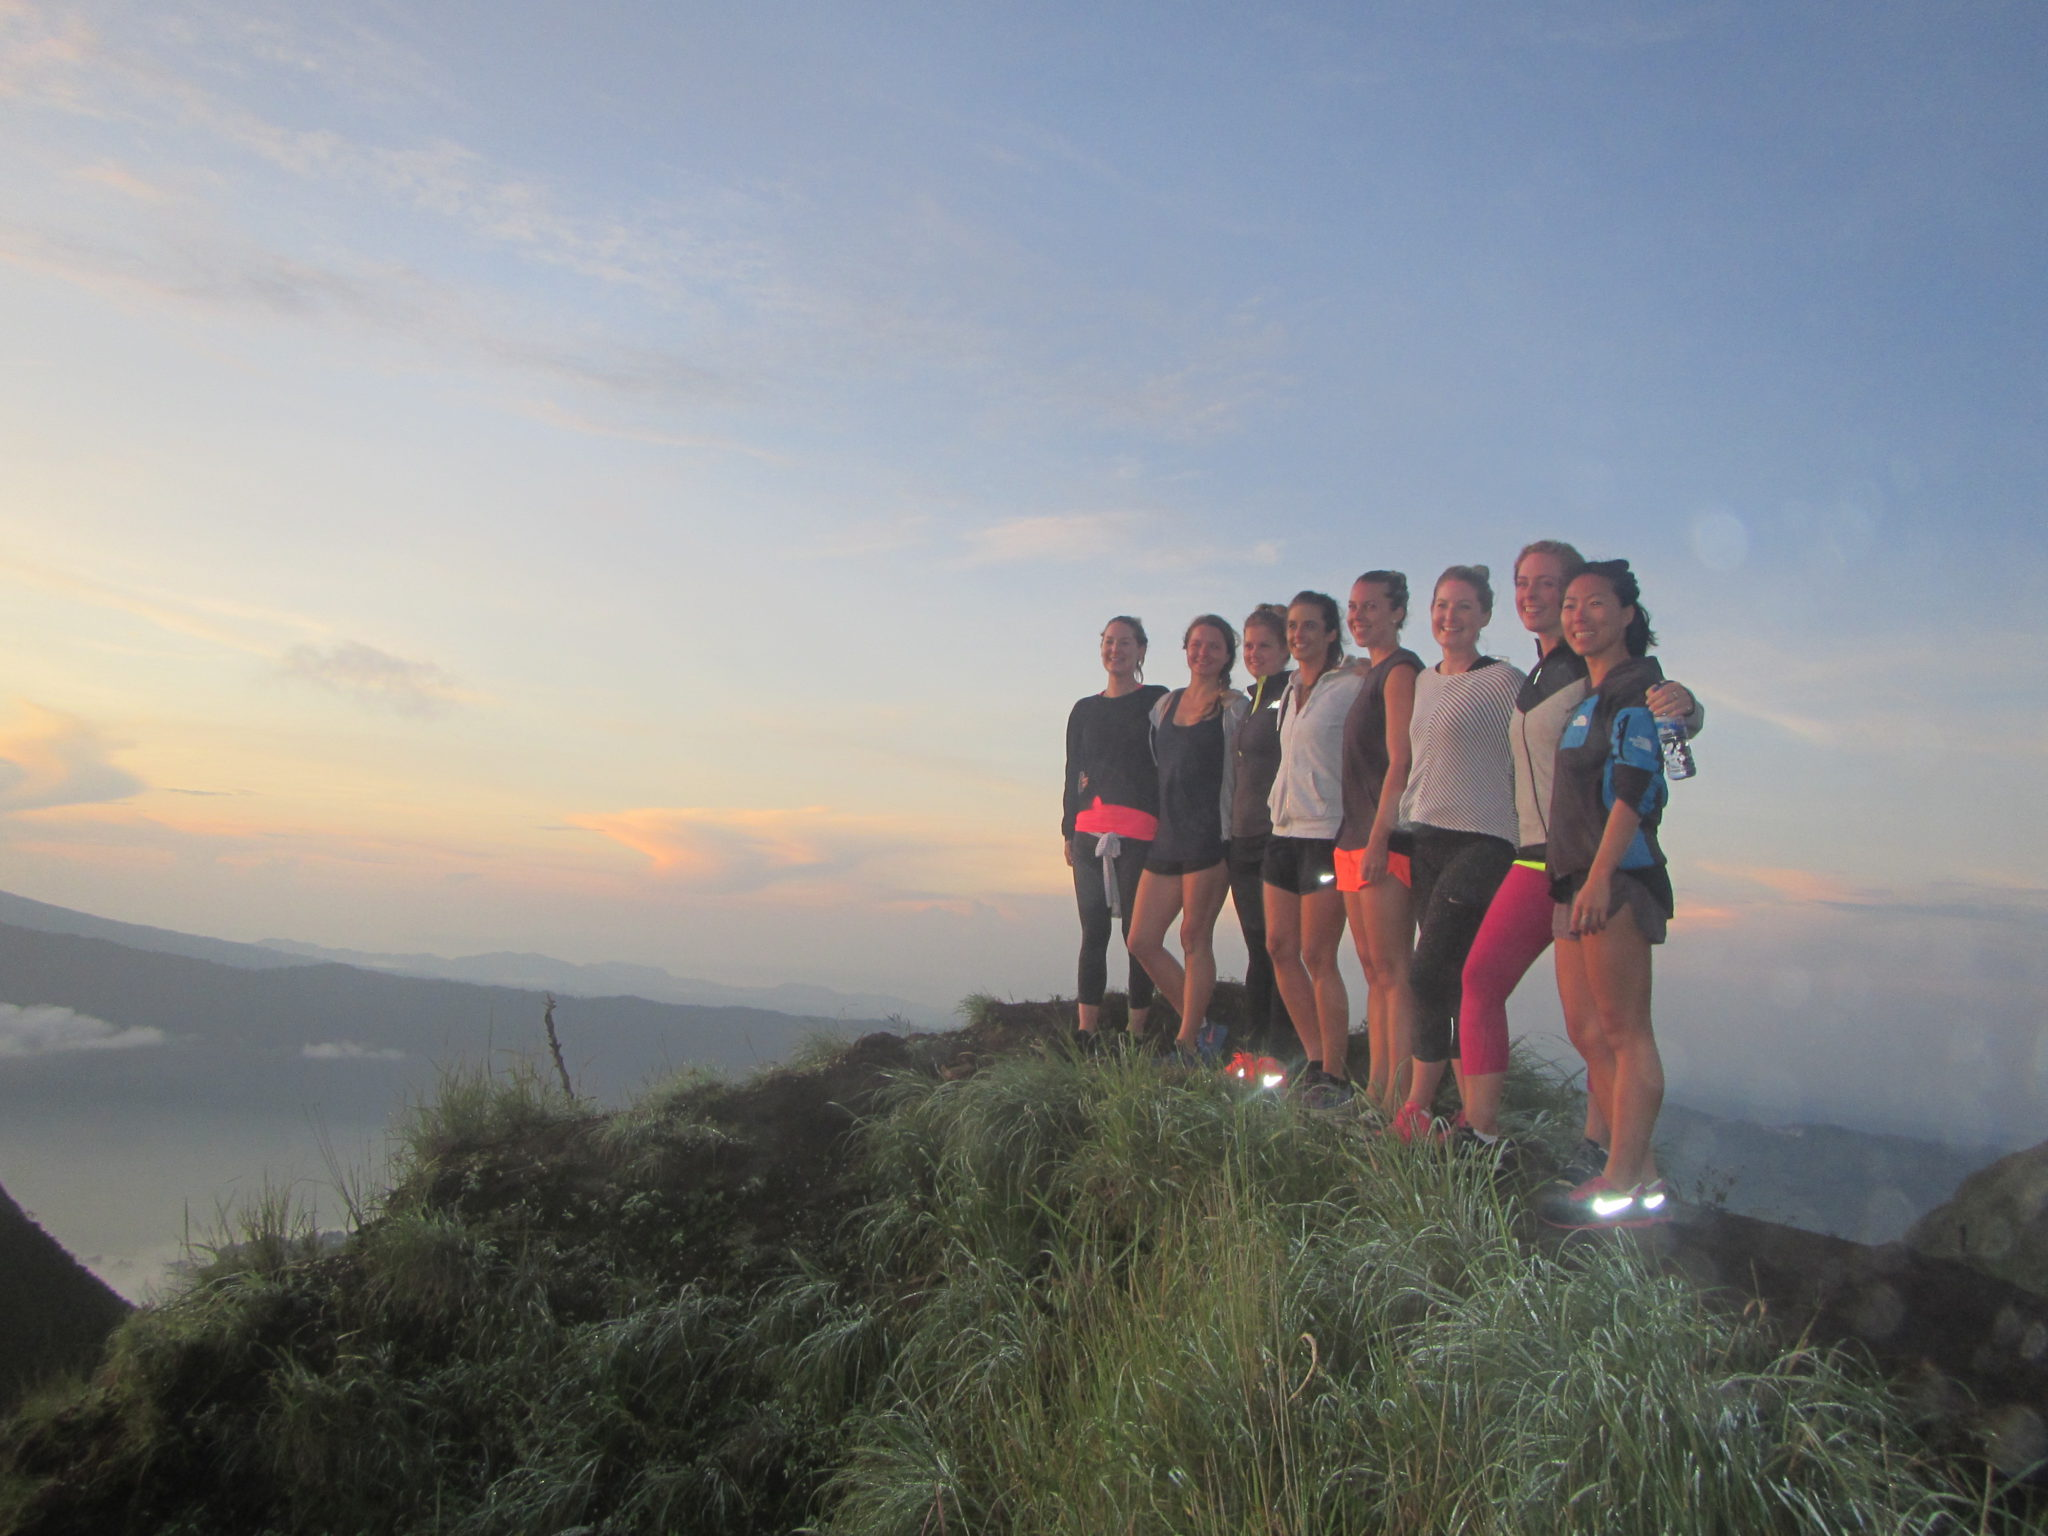 Mount Batur Sunrise Trekking Tour: Bali Trek Adventure